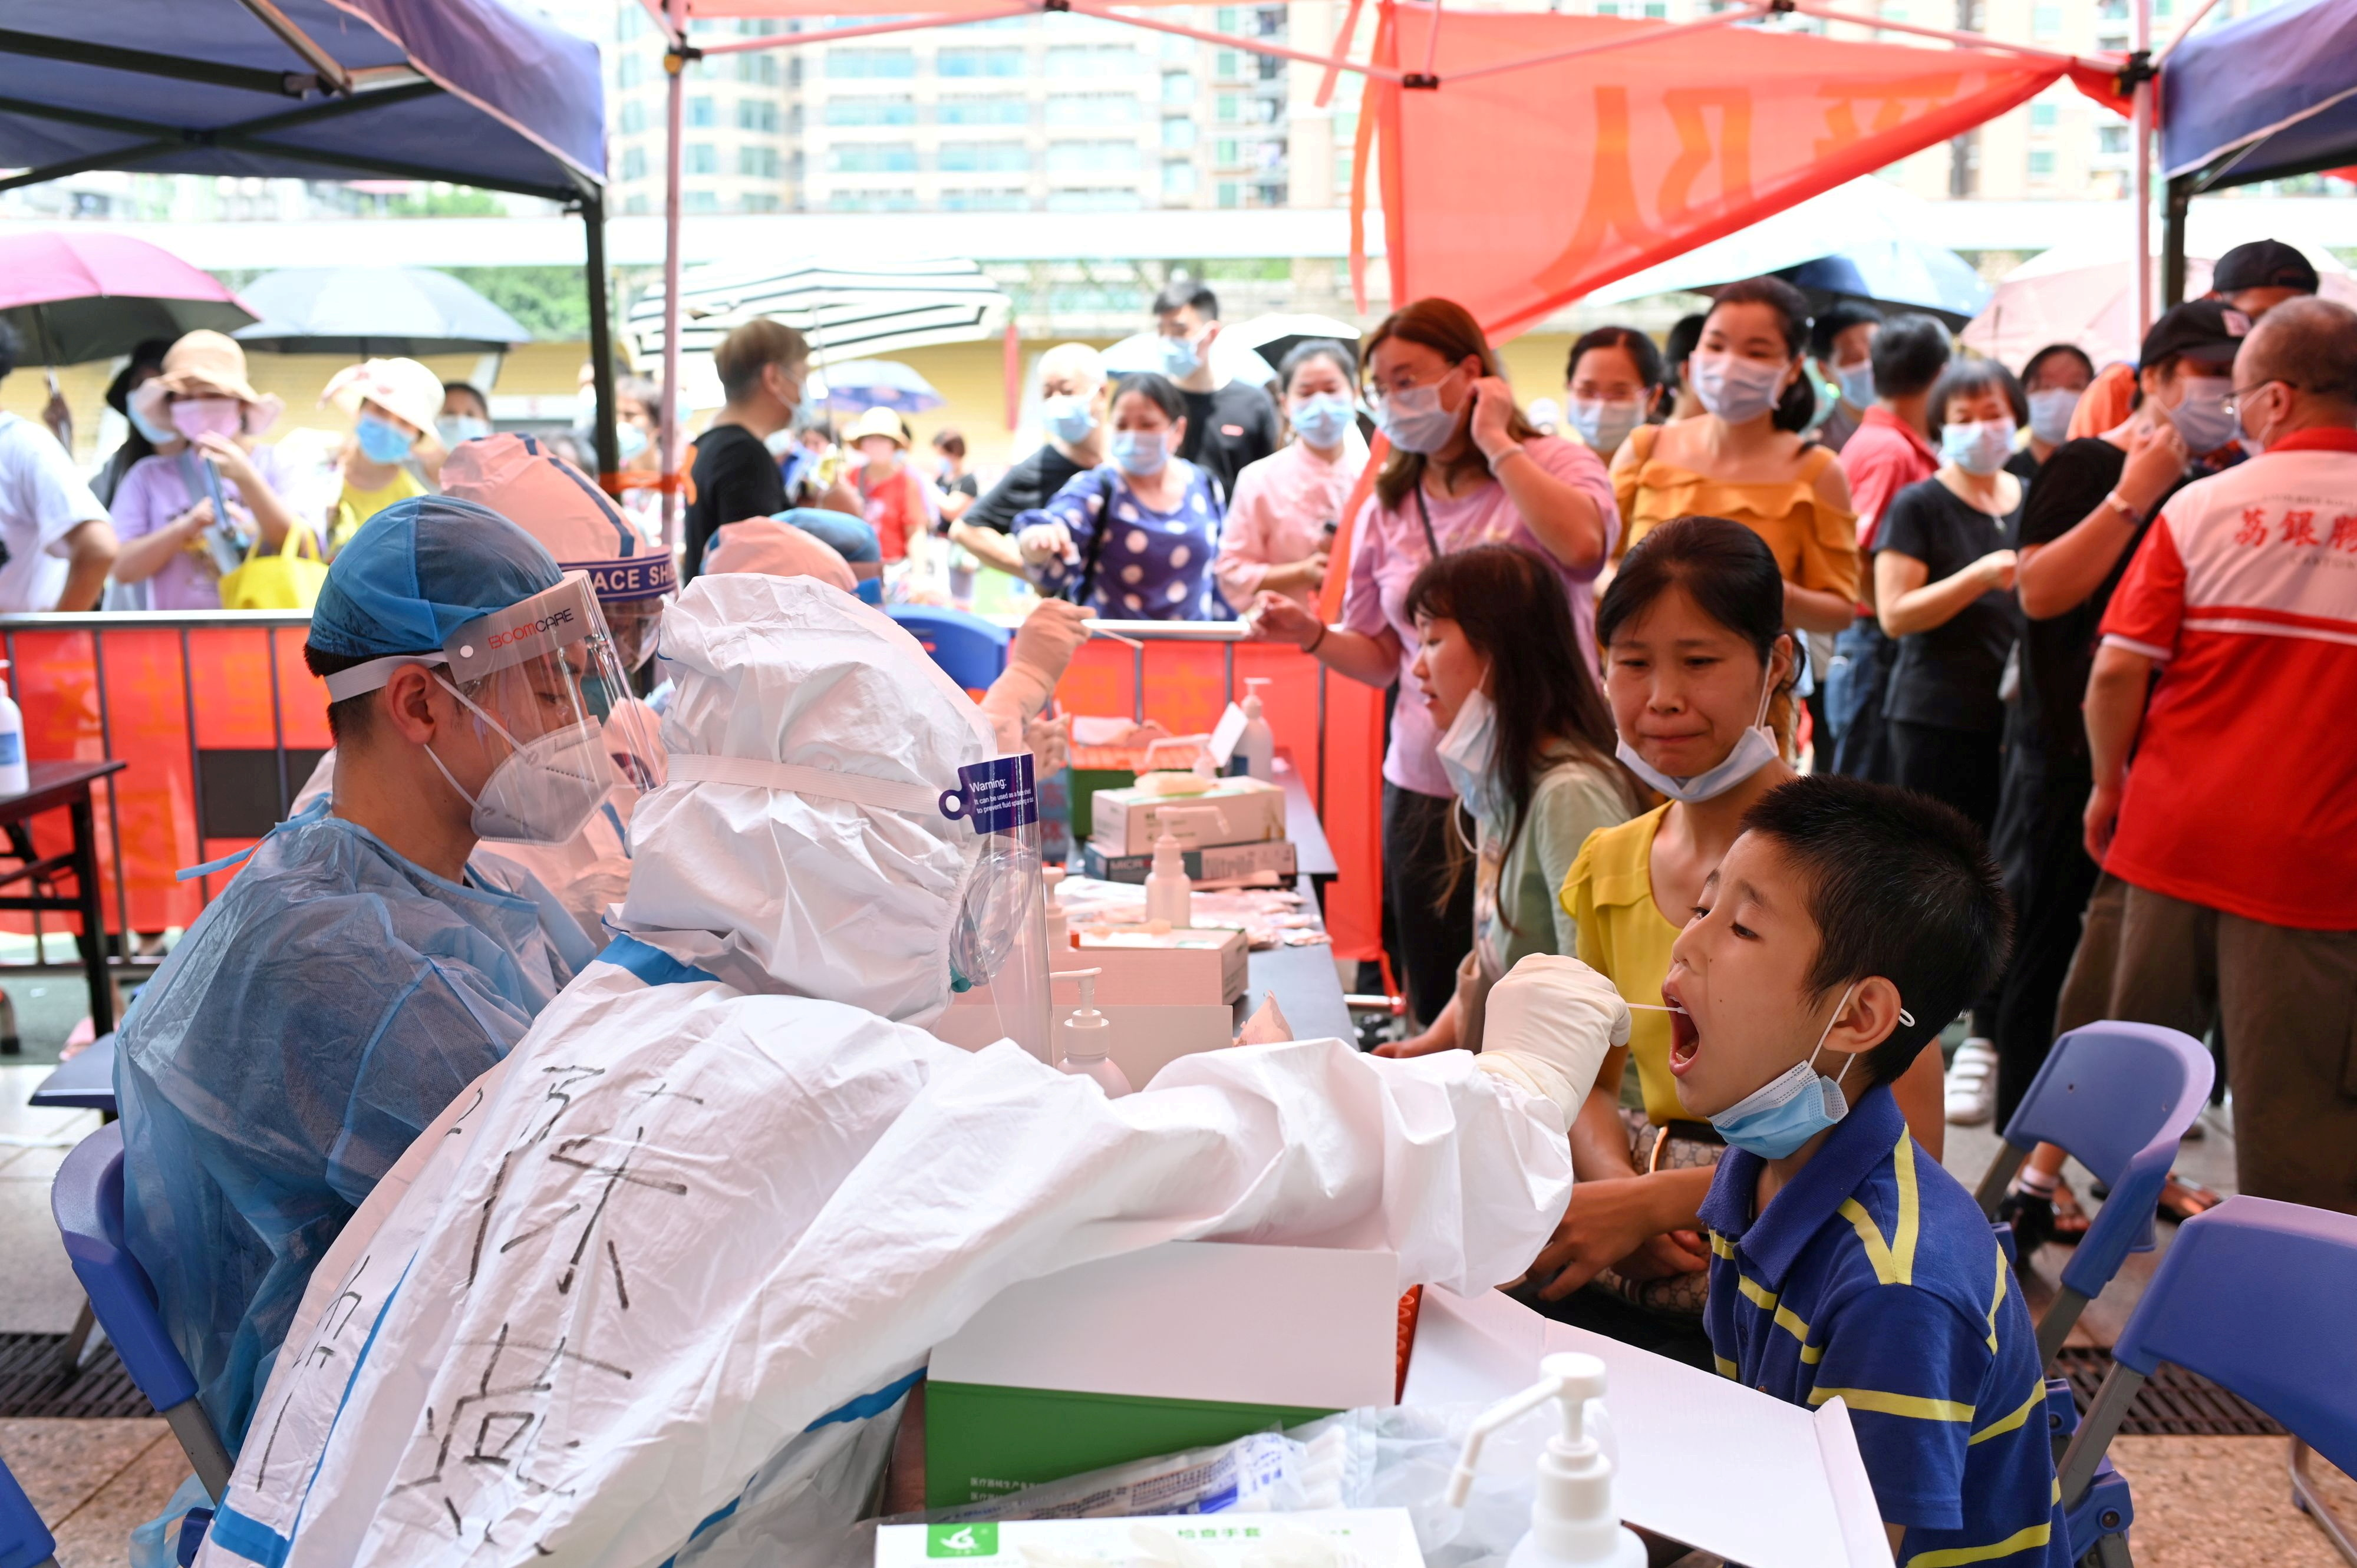 A medical worker collects a swab from a resident during a mass testing for the coronavirus disease (COVID-19) at a makeshift testing site at a stadium in Guangzhou, Guangdong province, China May 30, 2021. cnsphoto via REUTERS